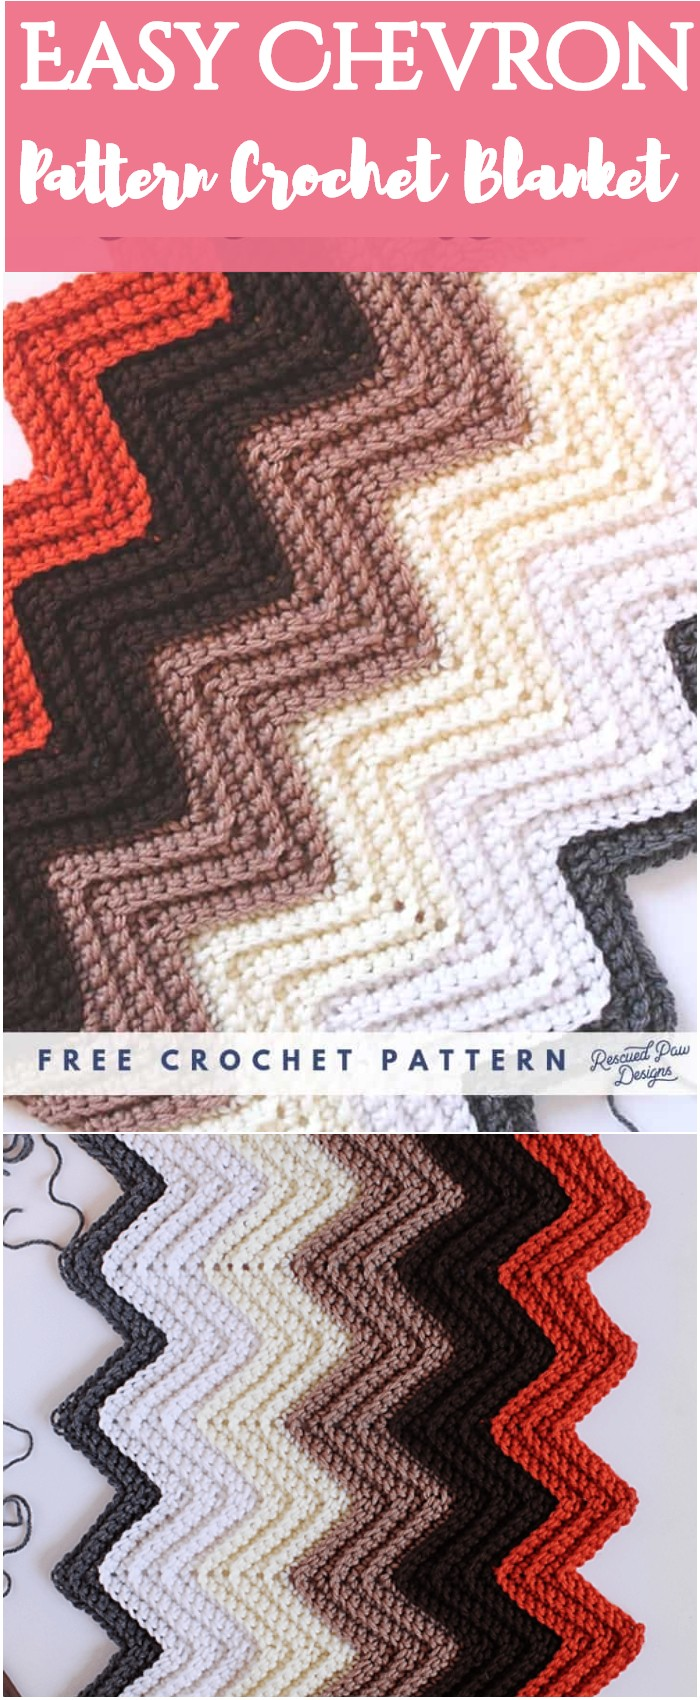 Easy Chevron Pattern Crochet Blanket - All of these free crochet blanket patterns are so much beautiful and really easy. Most of them are so much less time-consuming and even they can be completed in less than one week. #Blankets #crochetblanket #crochetblanketpatterns #freecrochetblanketpattern #freecrochetblanket